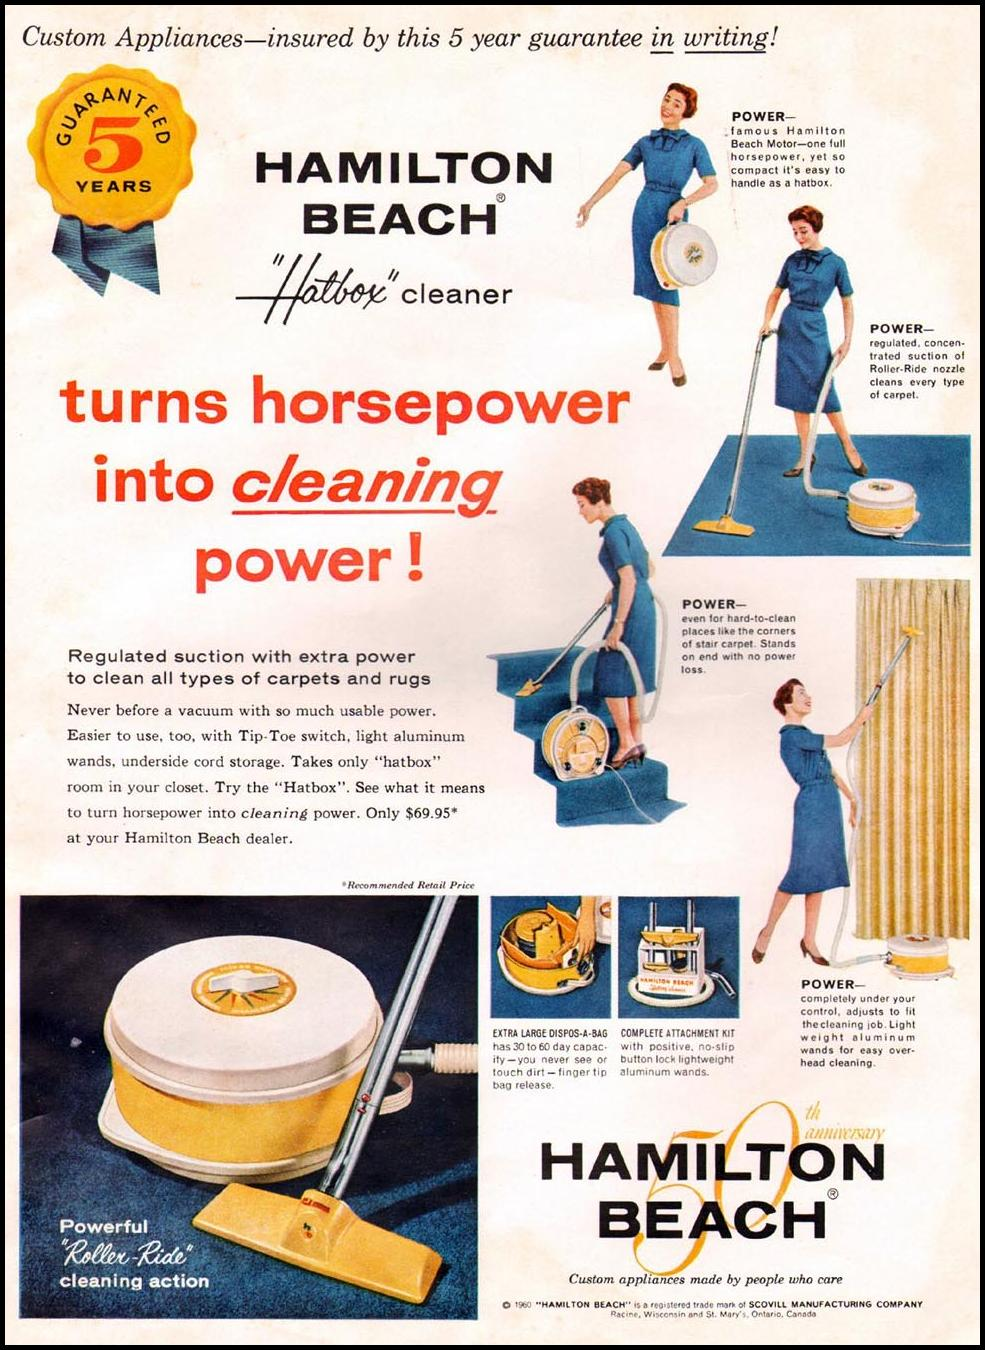 HAMILTON BEACH HATBOX VACUUM CLEANING BETTER HOMES AND GARDENS 03/01/1960 INSIDE BACK